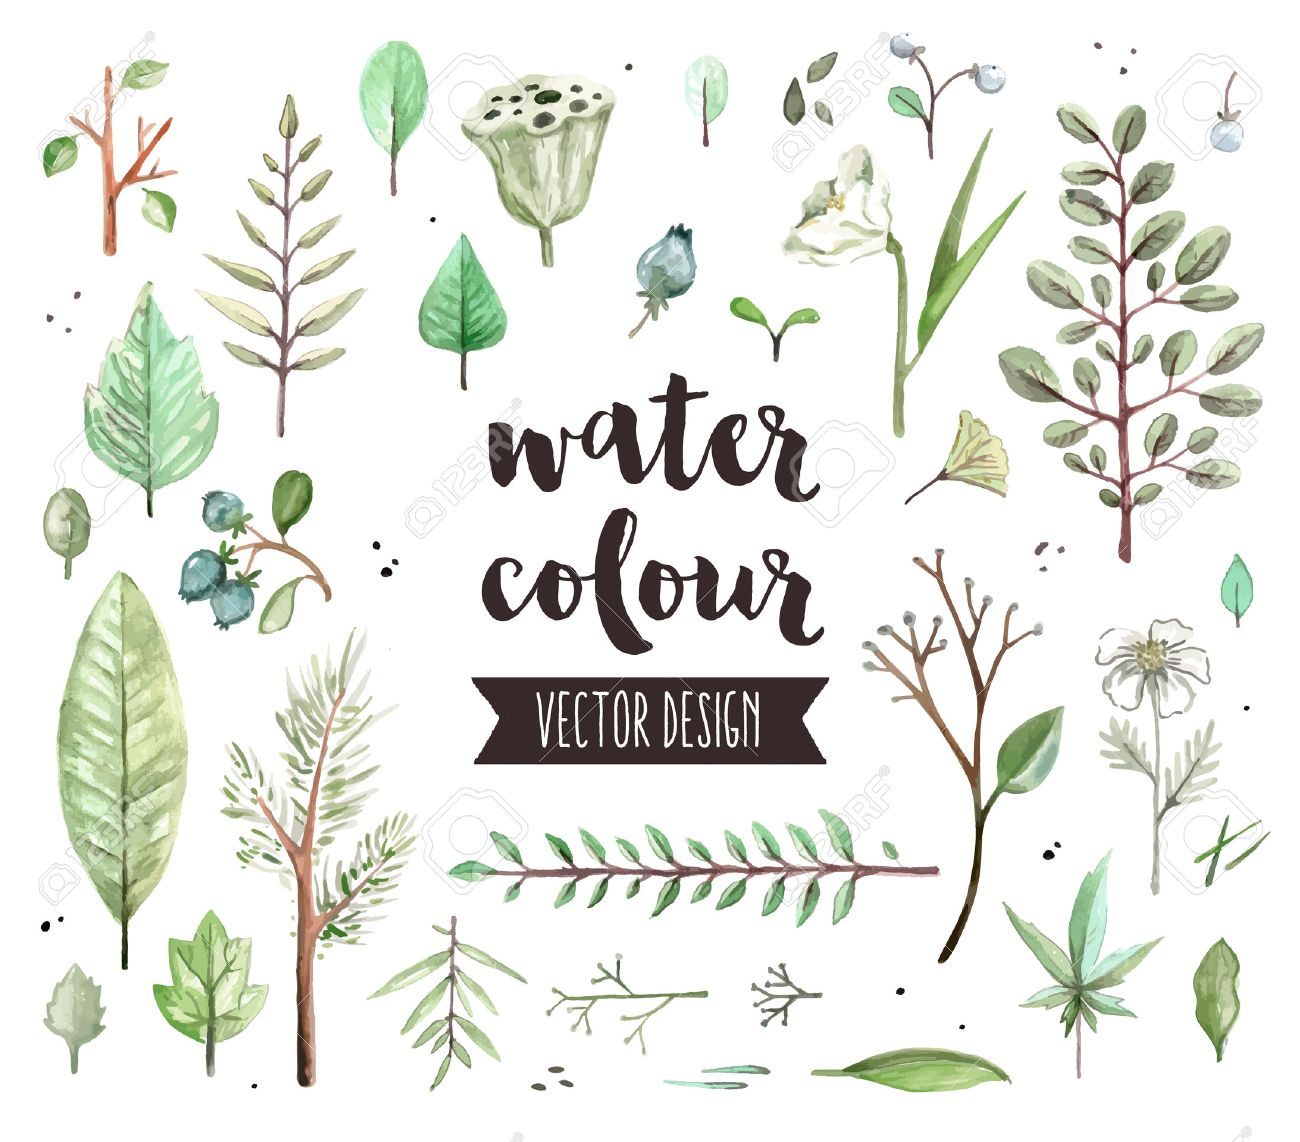 Premium quality watercolor icons set of various plant leaves, wild trees branch. realistic decoration with text lettering. Flat lay watercolour objects isolated on white background. - 53856859